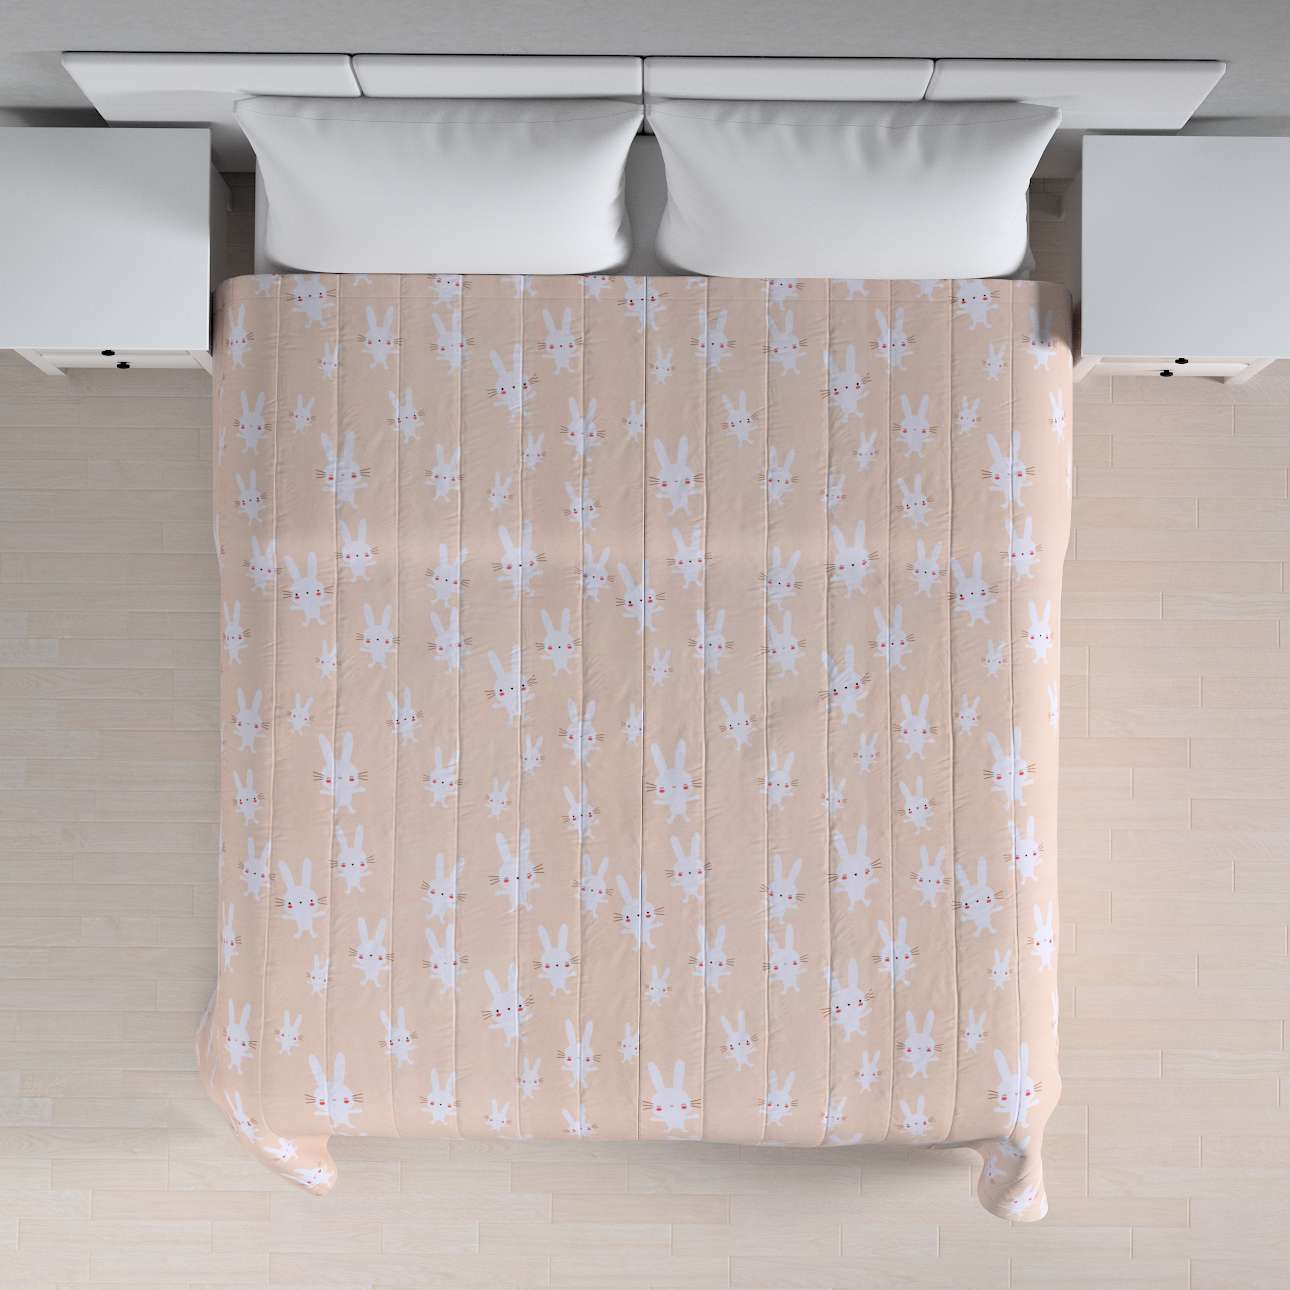 Quilted throw (vertical quilt pattern) 260 x 210 cm (102 x 83 inch) in collection Apanona, fabric: 151-00